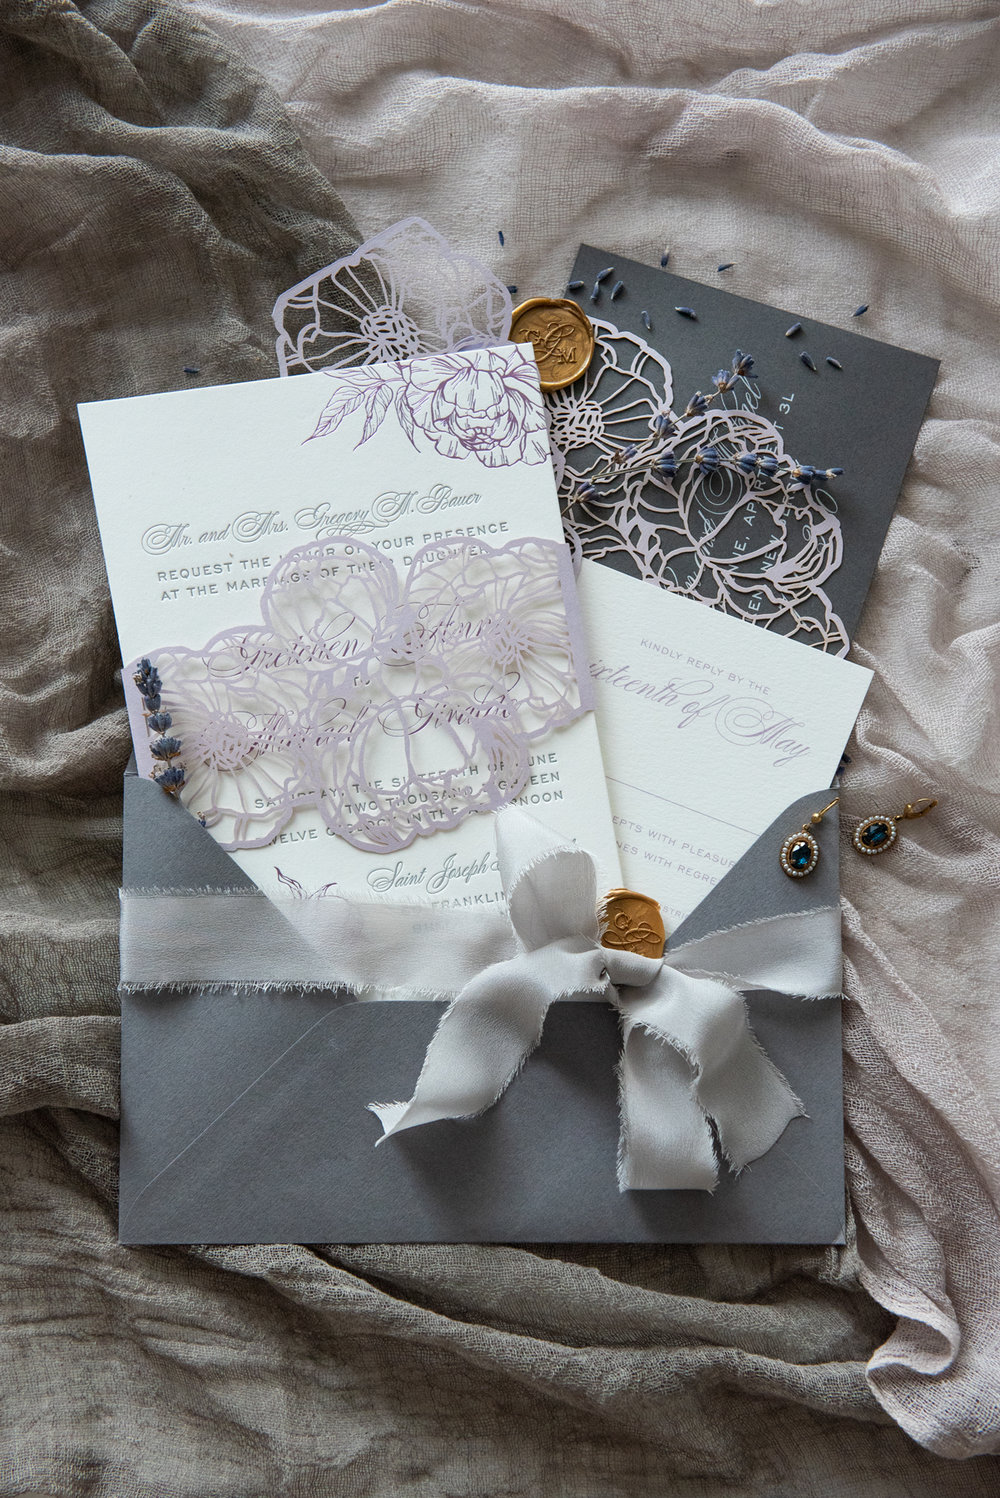 Vidhi-Dattani-gretchen-michael-invitation-suite-ribbon-wax-seal.jpg